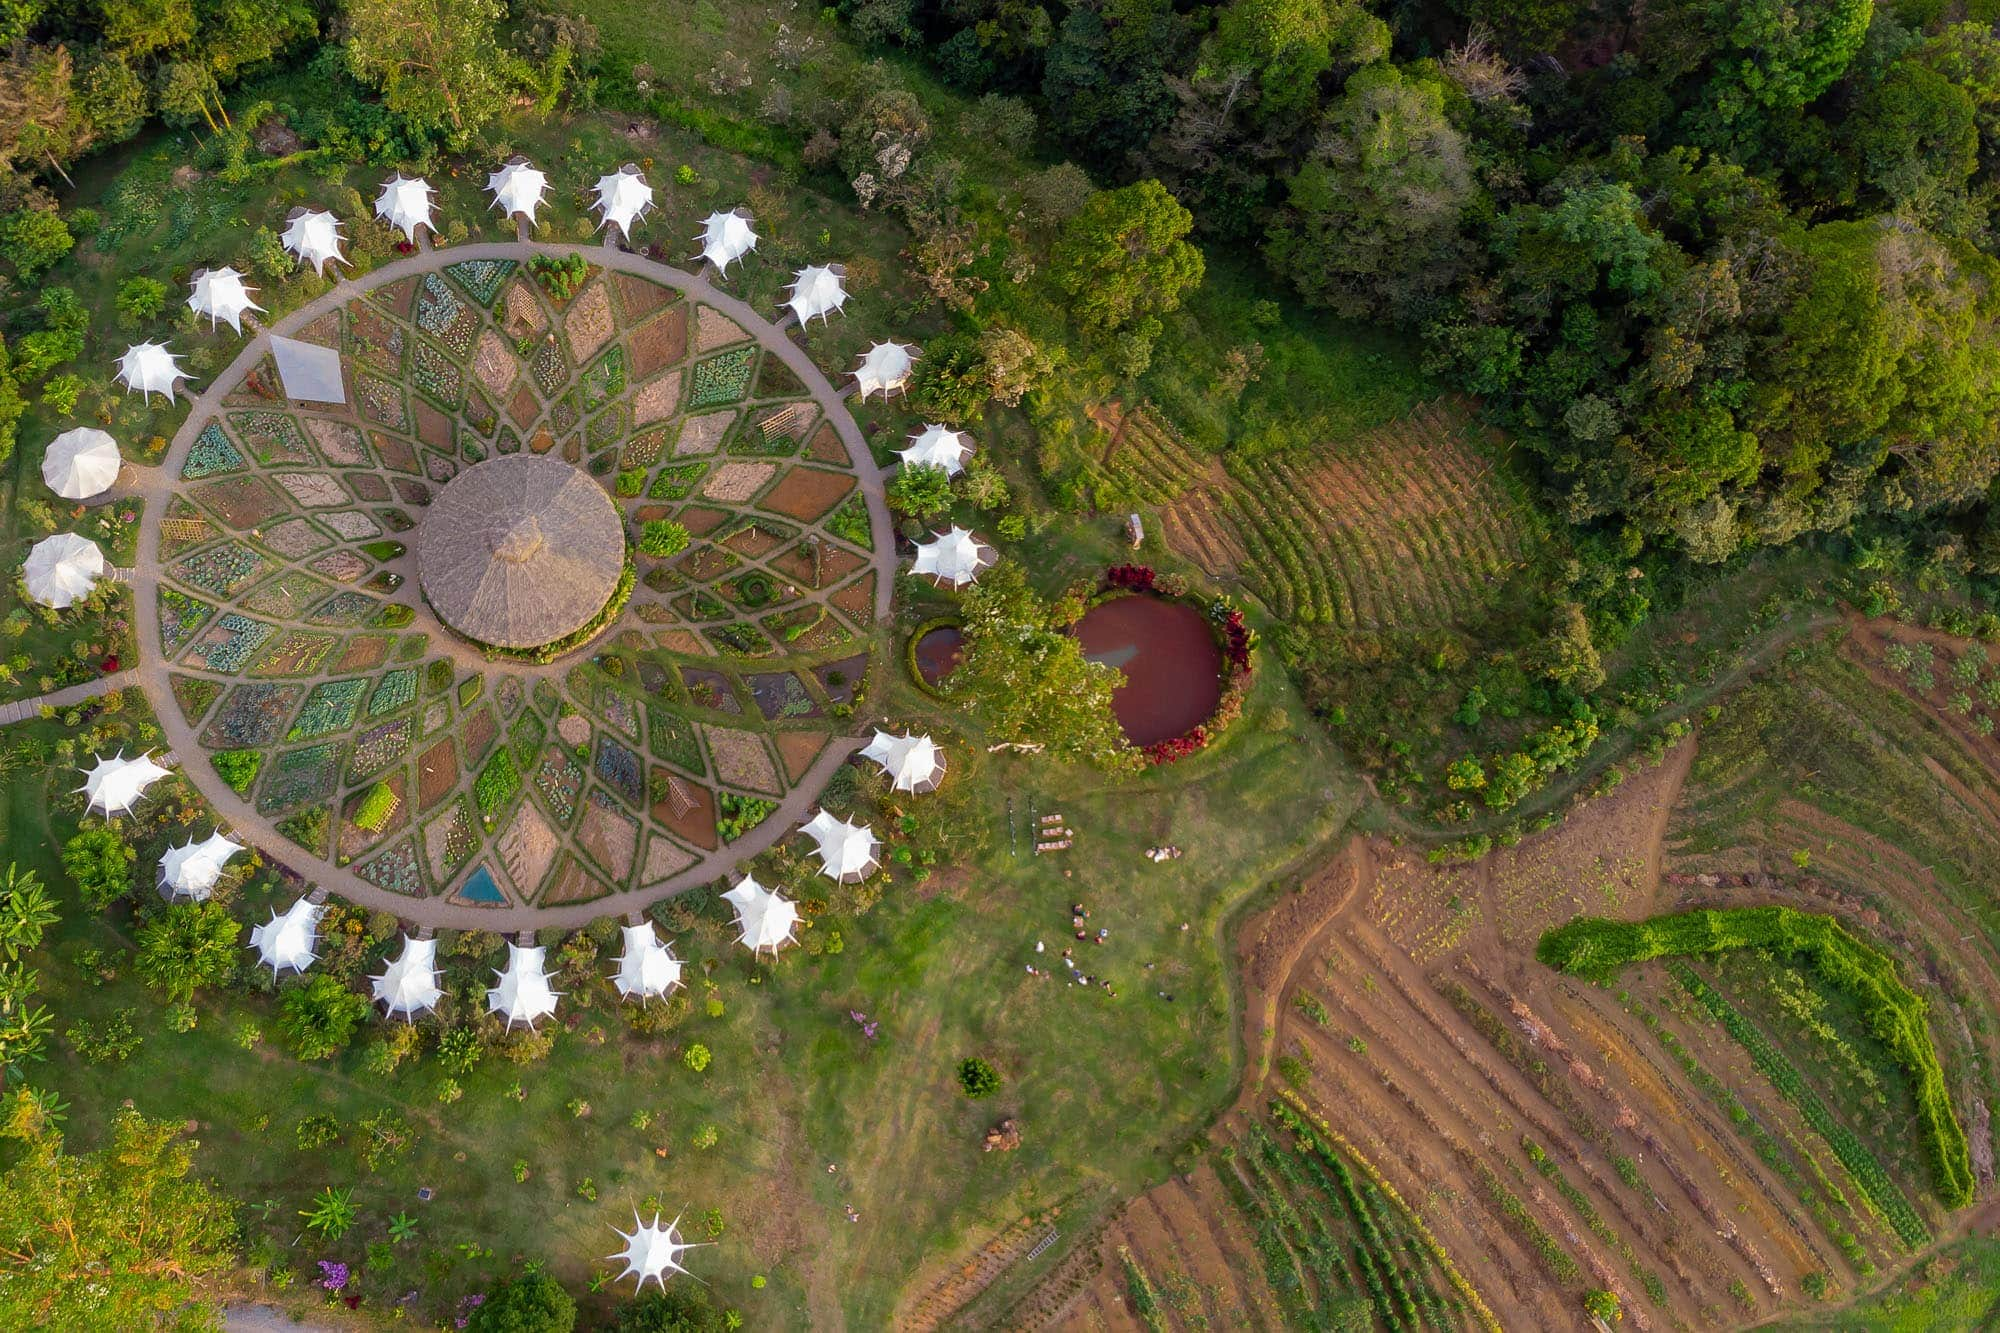 Aerial shot showing the ring of glamping tents and the meticulously organized gardens of Kinkara